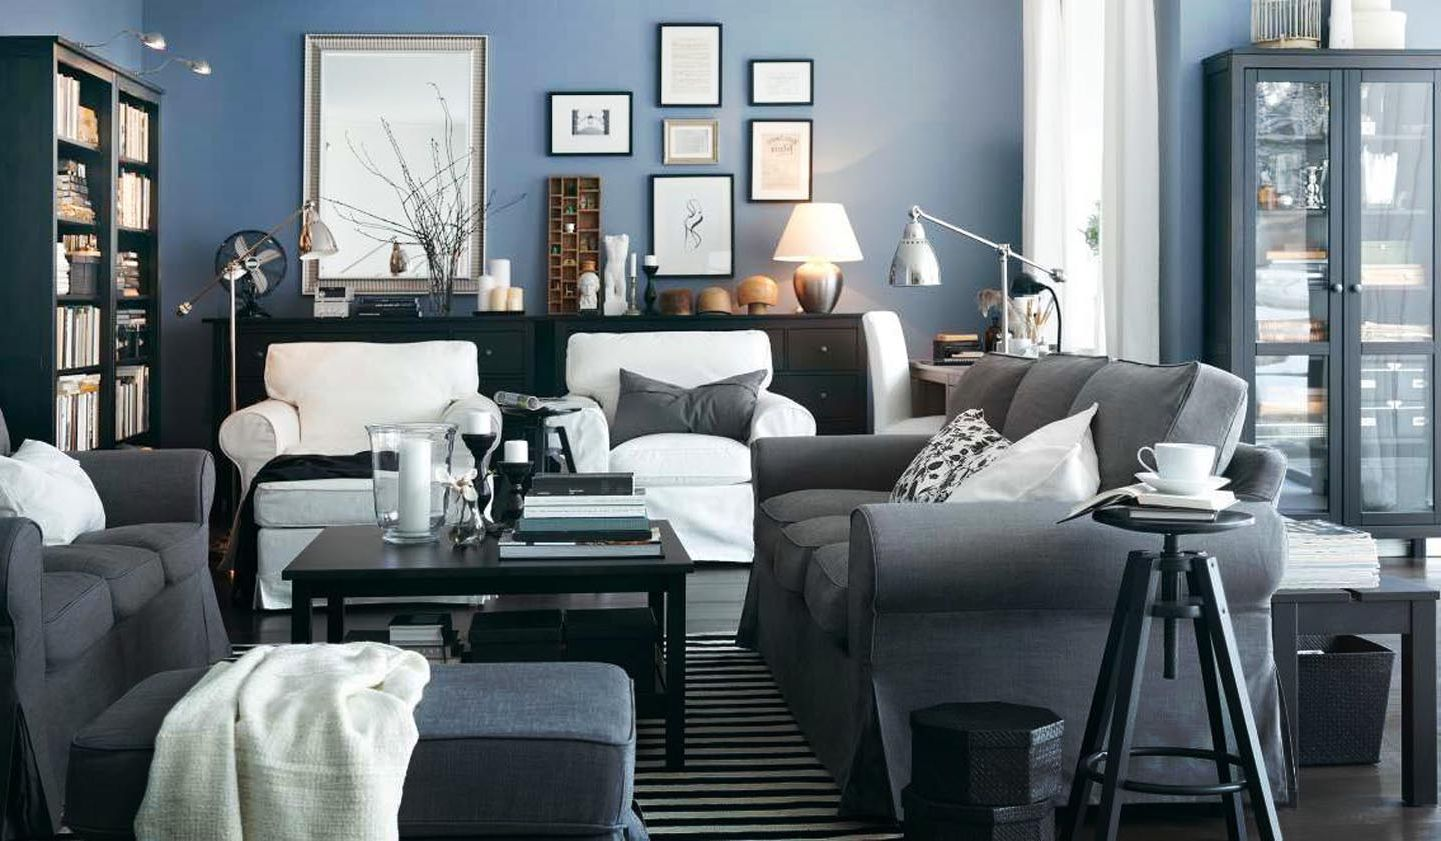 livingroom-furniture-grey-sofa-living-room-ideas-stunning-blue-walls-with-grey-sofa-set-and-black-coffee-table-also-cabinet-bookshelves-and-wooden-chest-cabinet-drawers-also-some-frame-on-the-wa.jpg